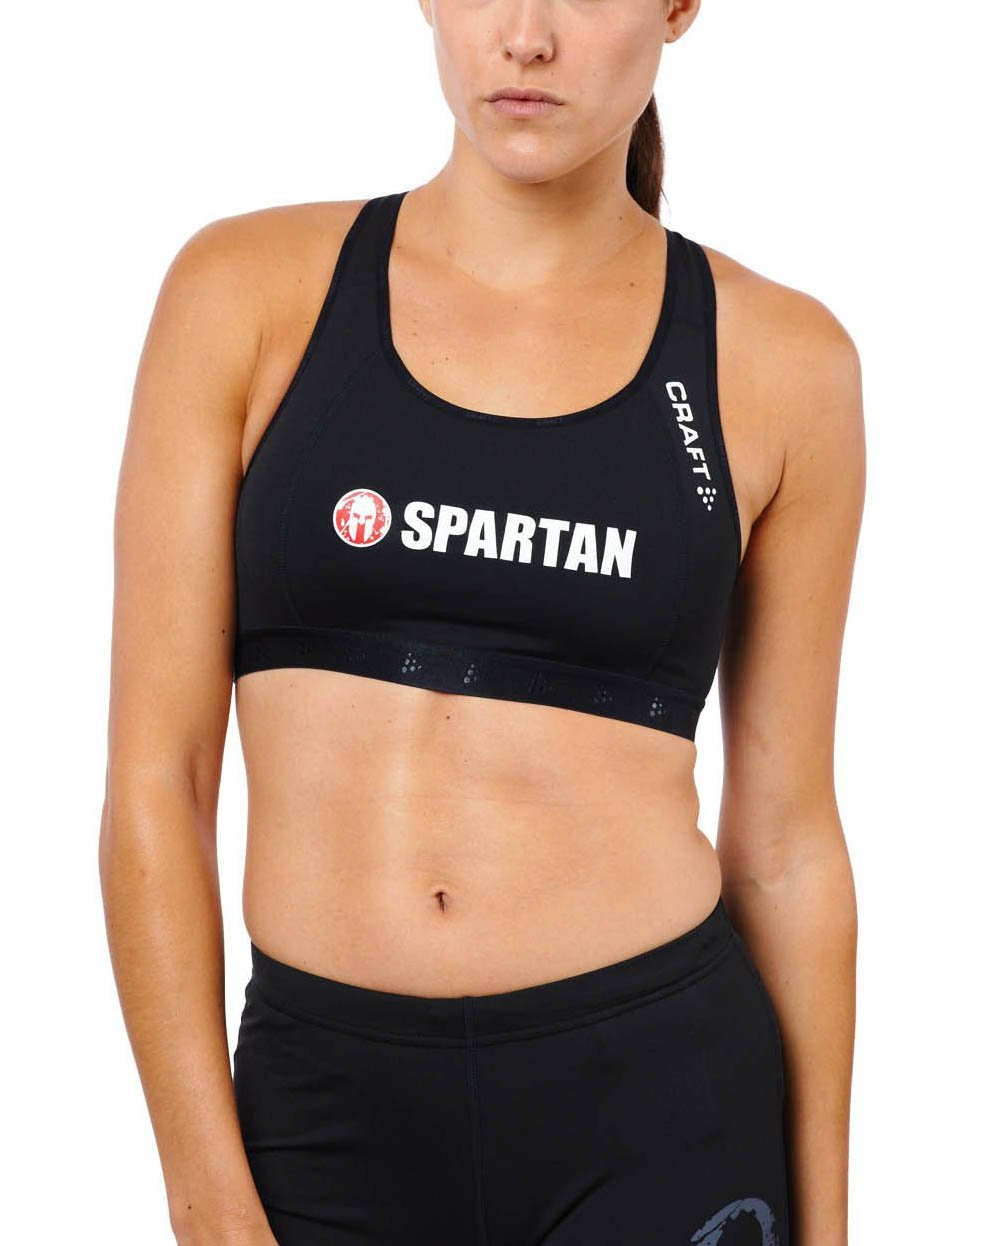 CRAFT SPARTAN By CRAFT Greatness Mid Impact Bra - Women's Black XS